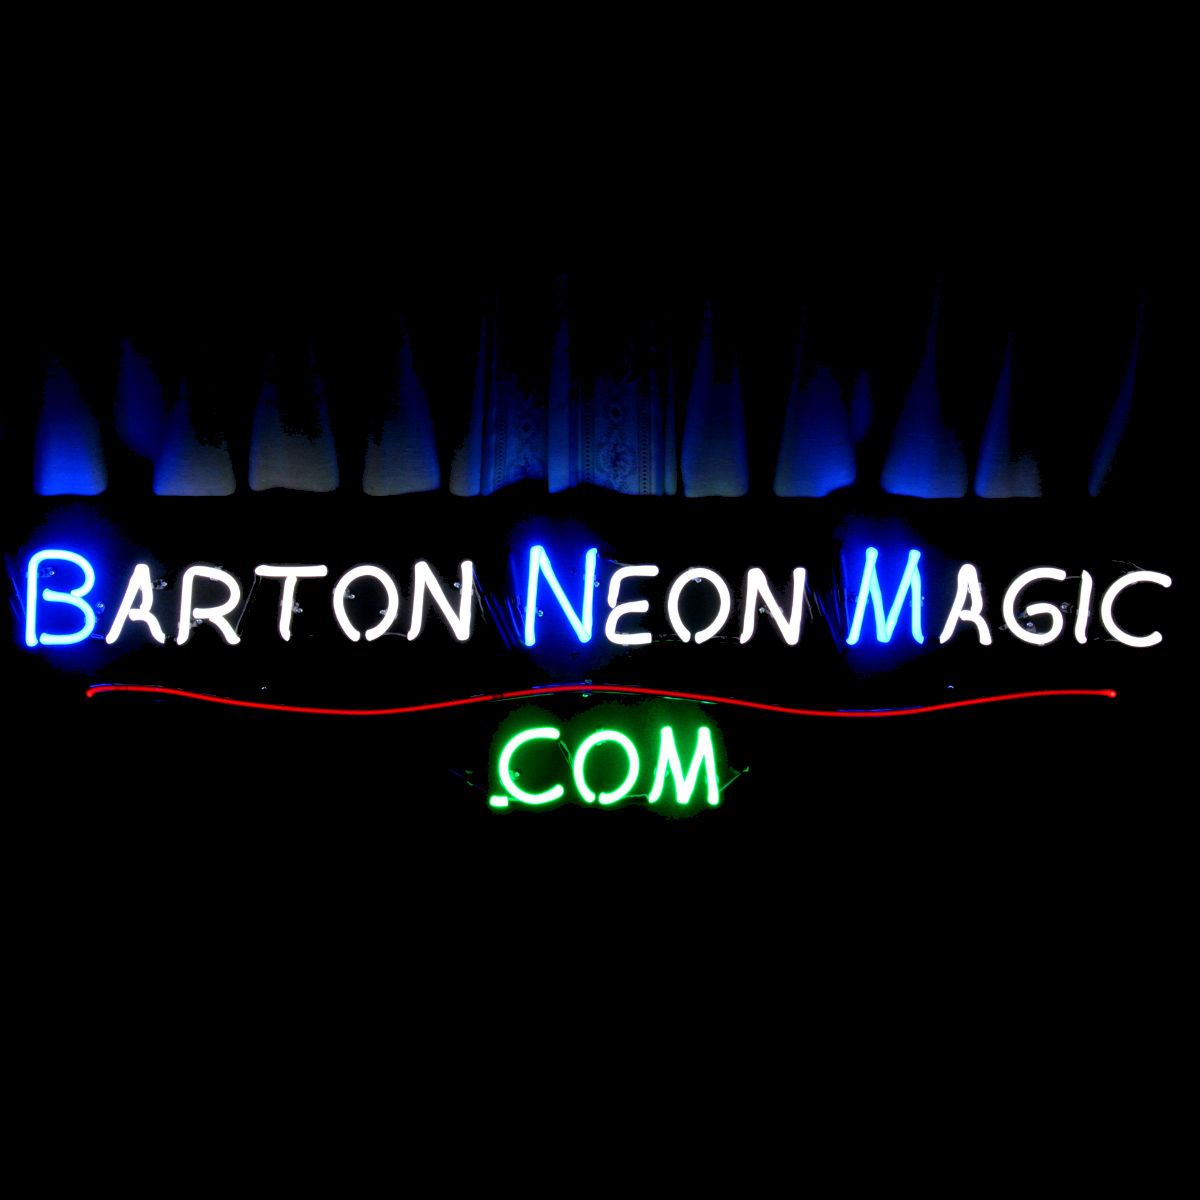 Designer NEON Chandeliers, Sculptures, and Artworks by John Barton - BartonNeonMagic.com